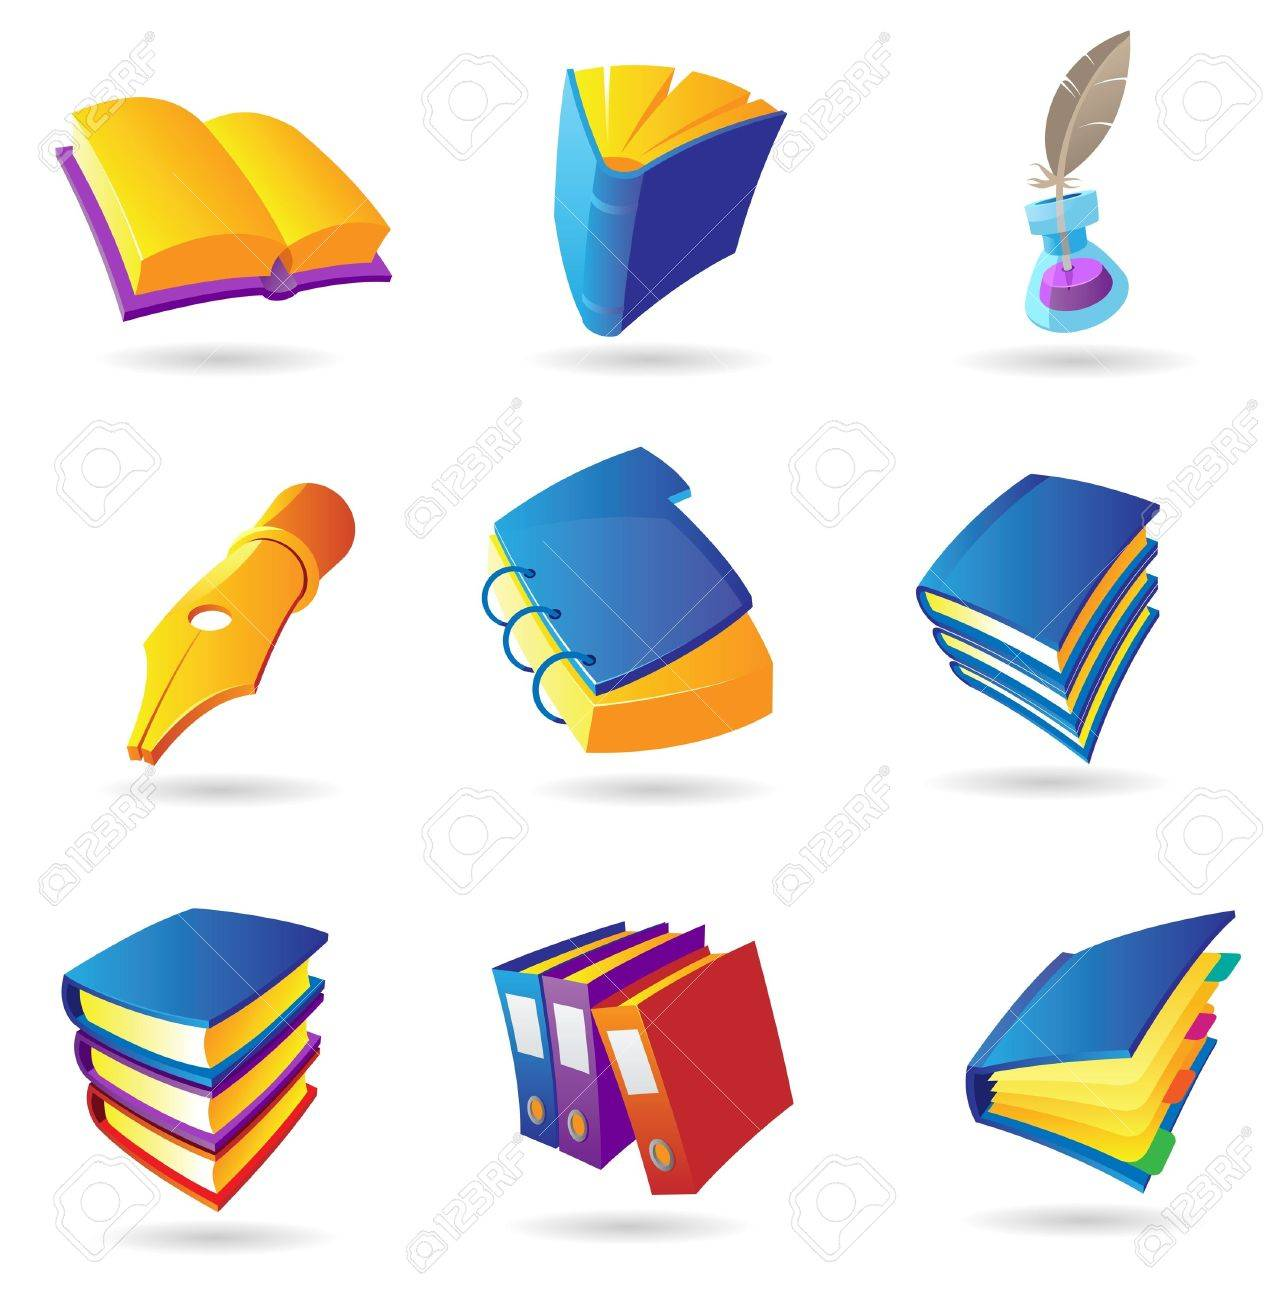 icons for books and literature vector illustration royalty icons for books and literature vector illustration stock vector 10893007